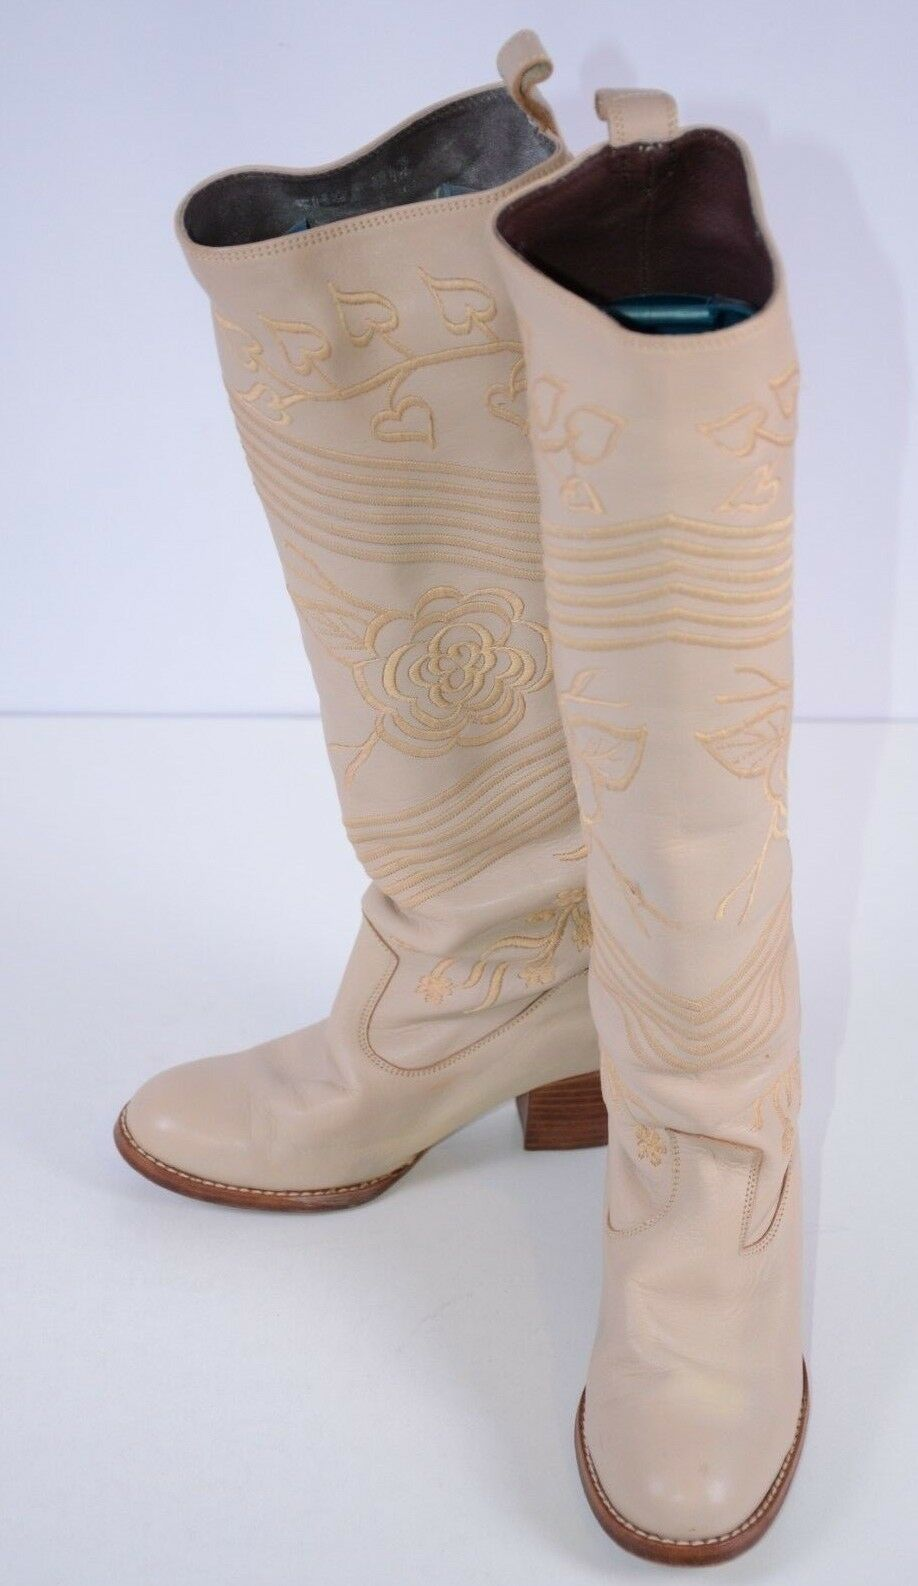 shoes Biz Women's Embroidered Leather Boots Size 7 Knee High Boho Slip On Floral